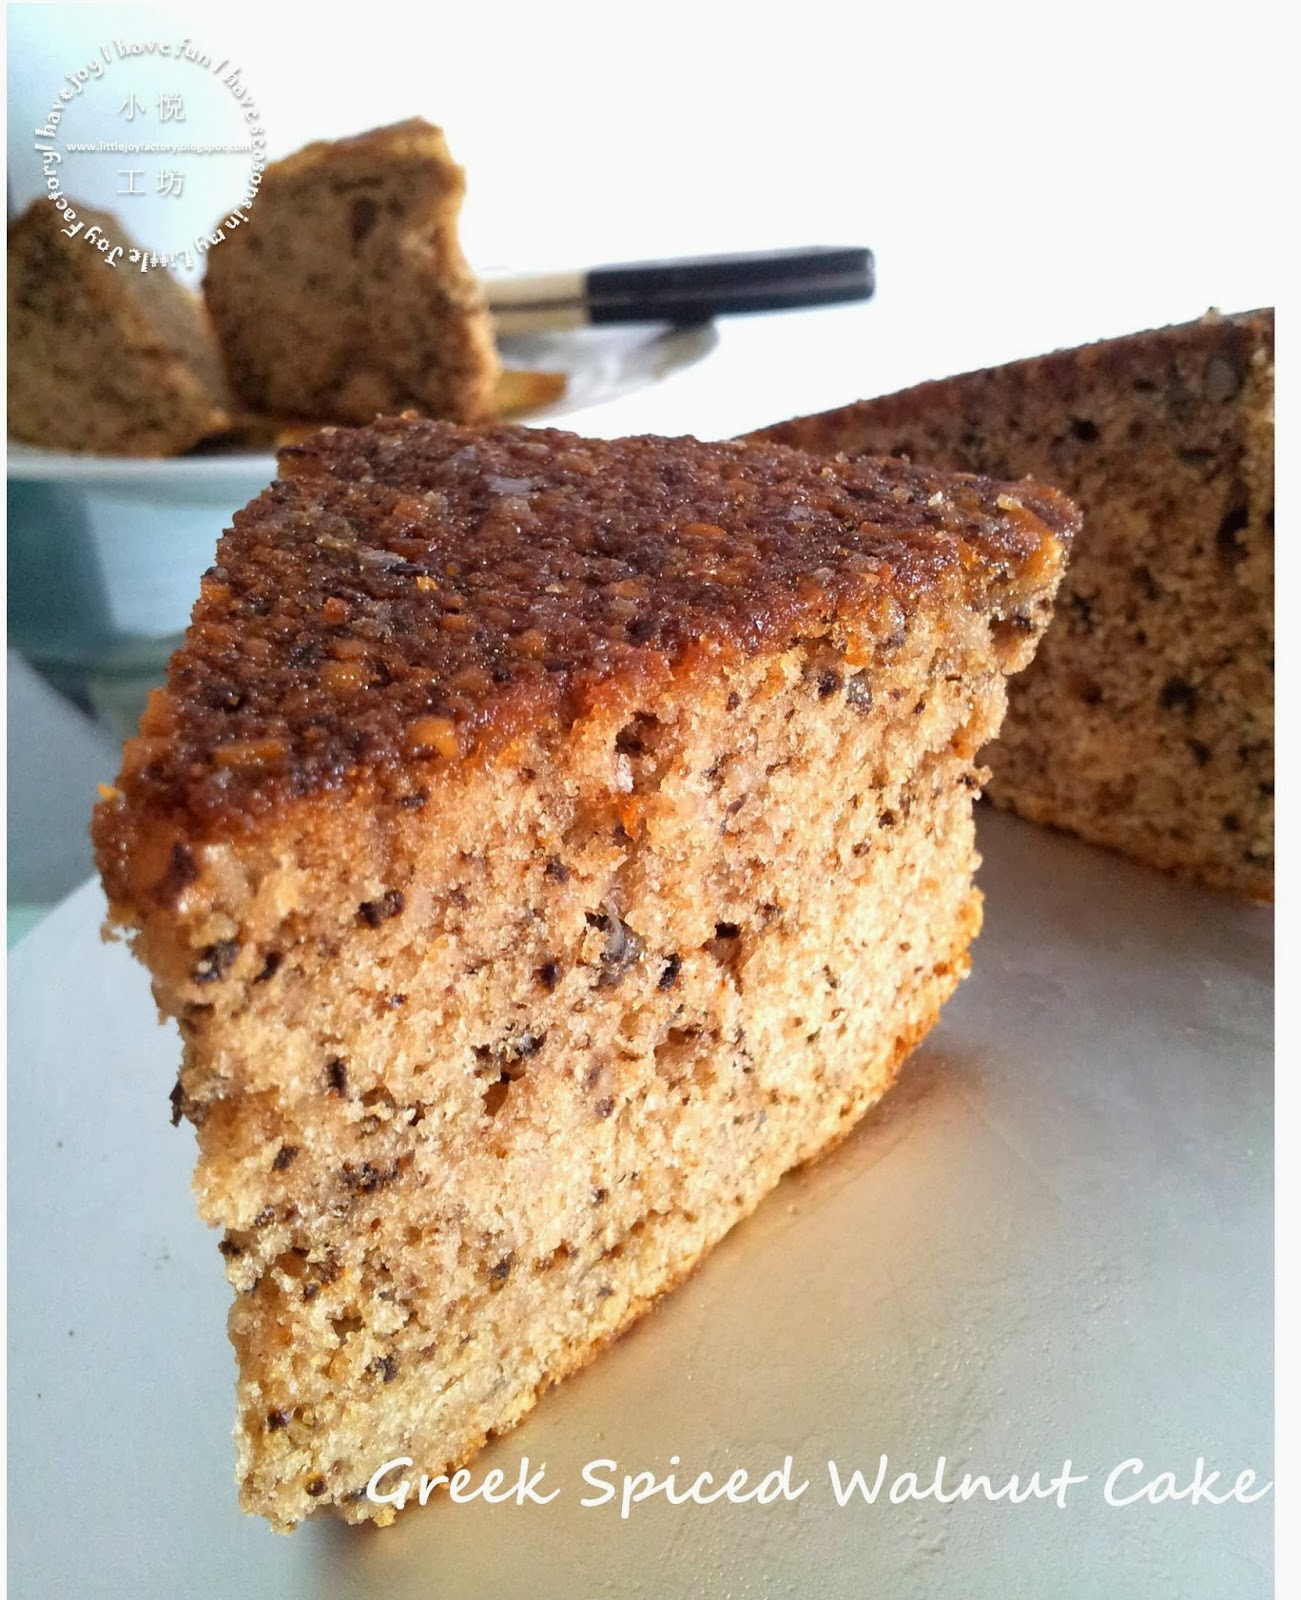 ... Joy Factory: Greek Spiced Walnut Cake - 希腊肉桂核桃蛋糕